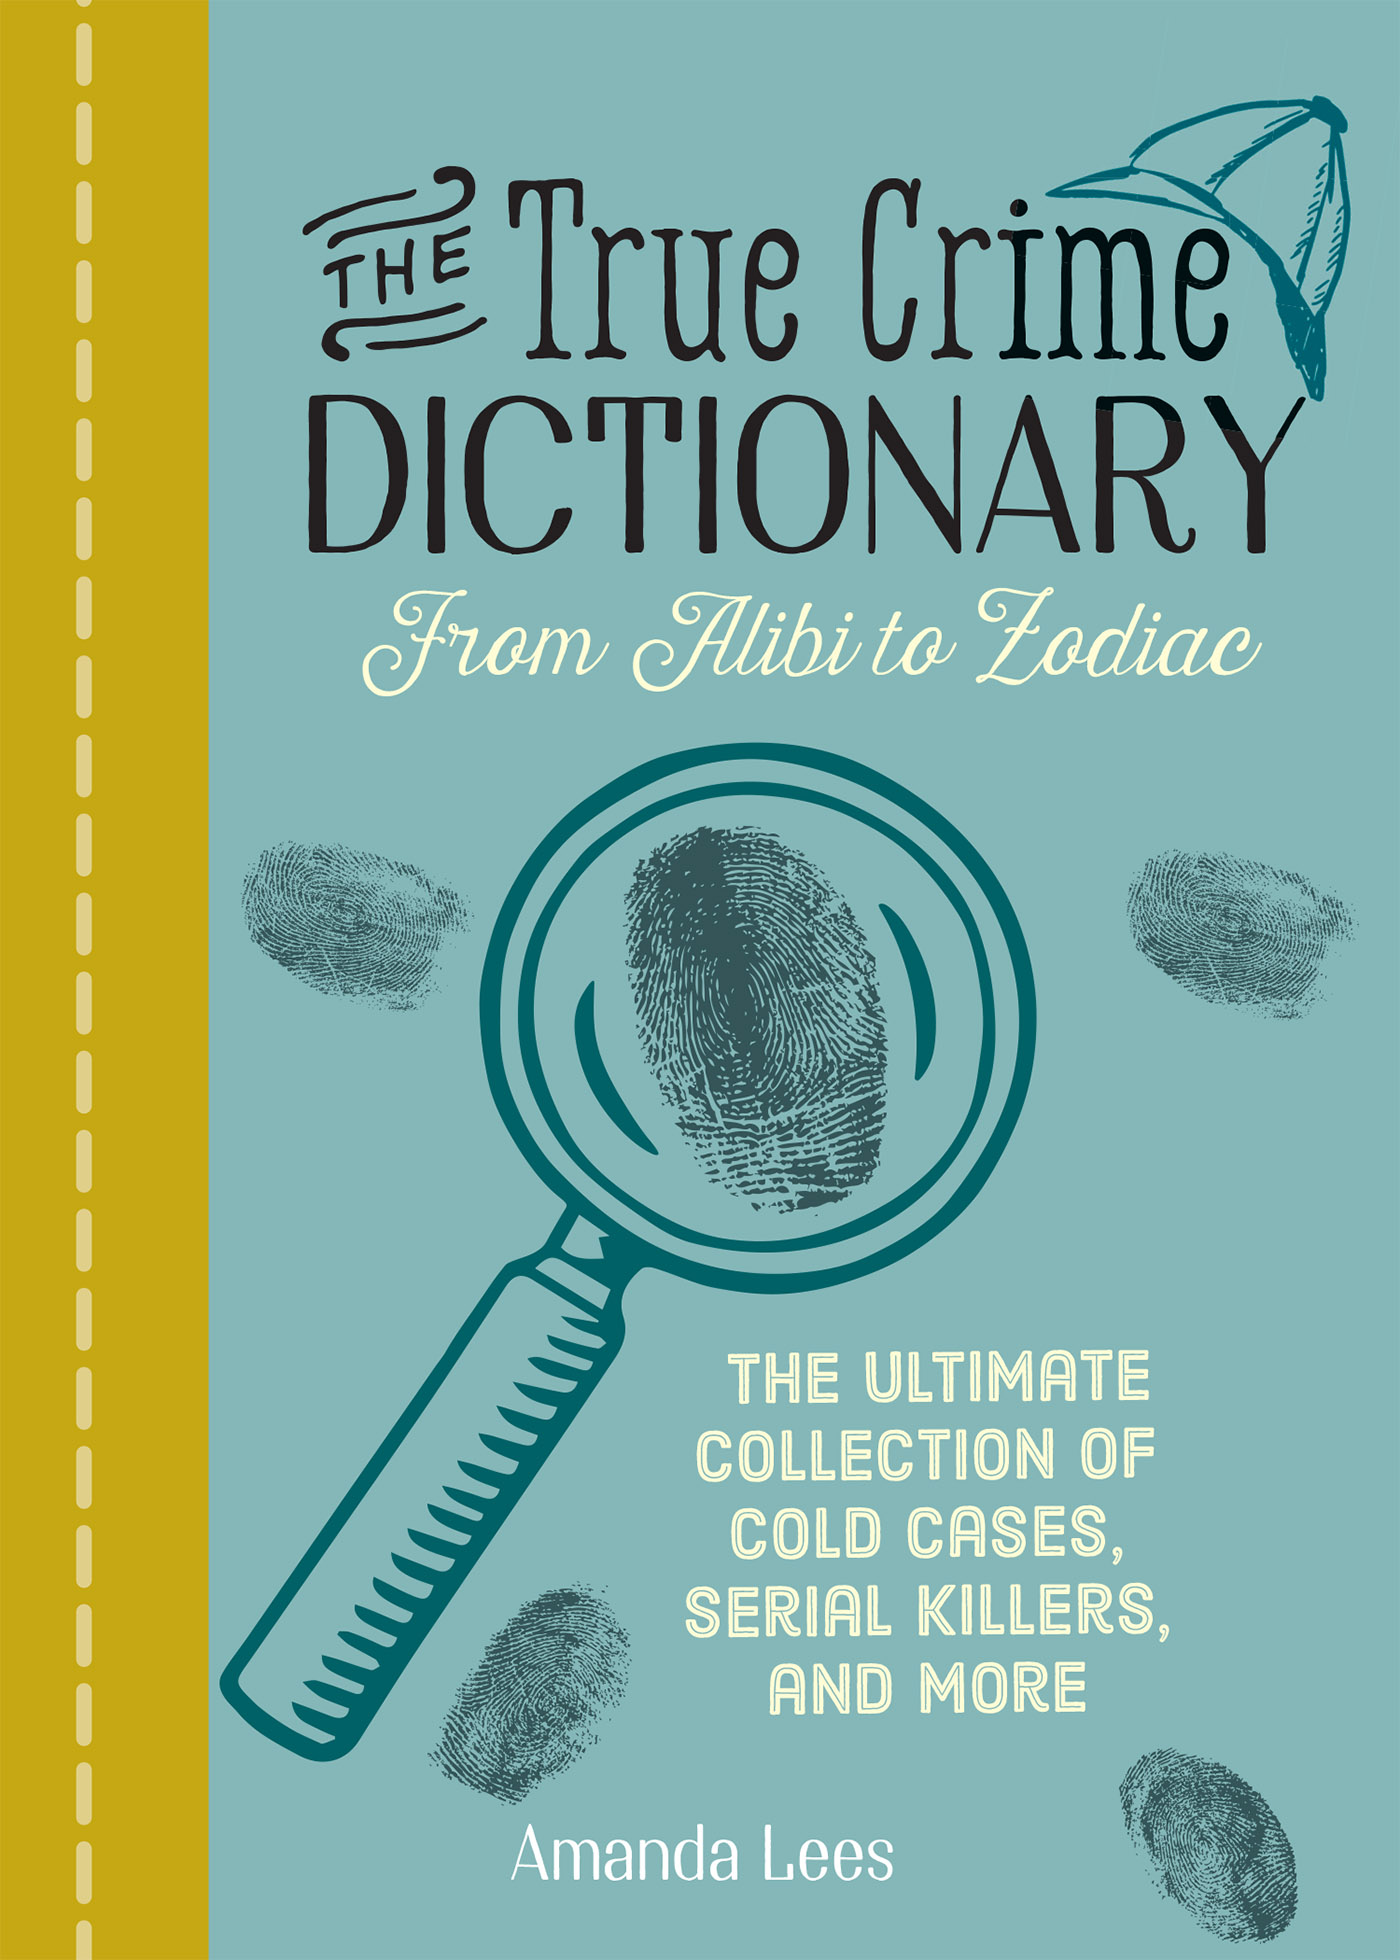 The True Crime Dictionary_cover_choice.indd